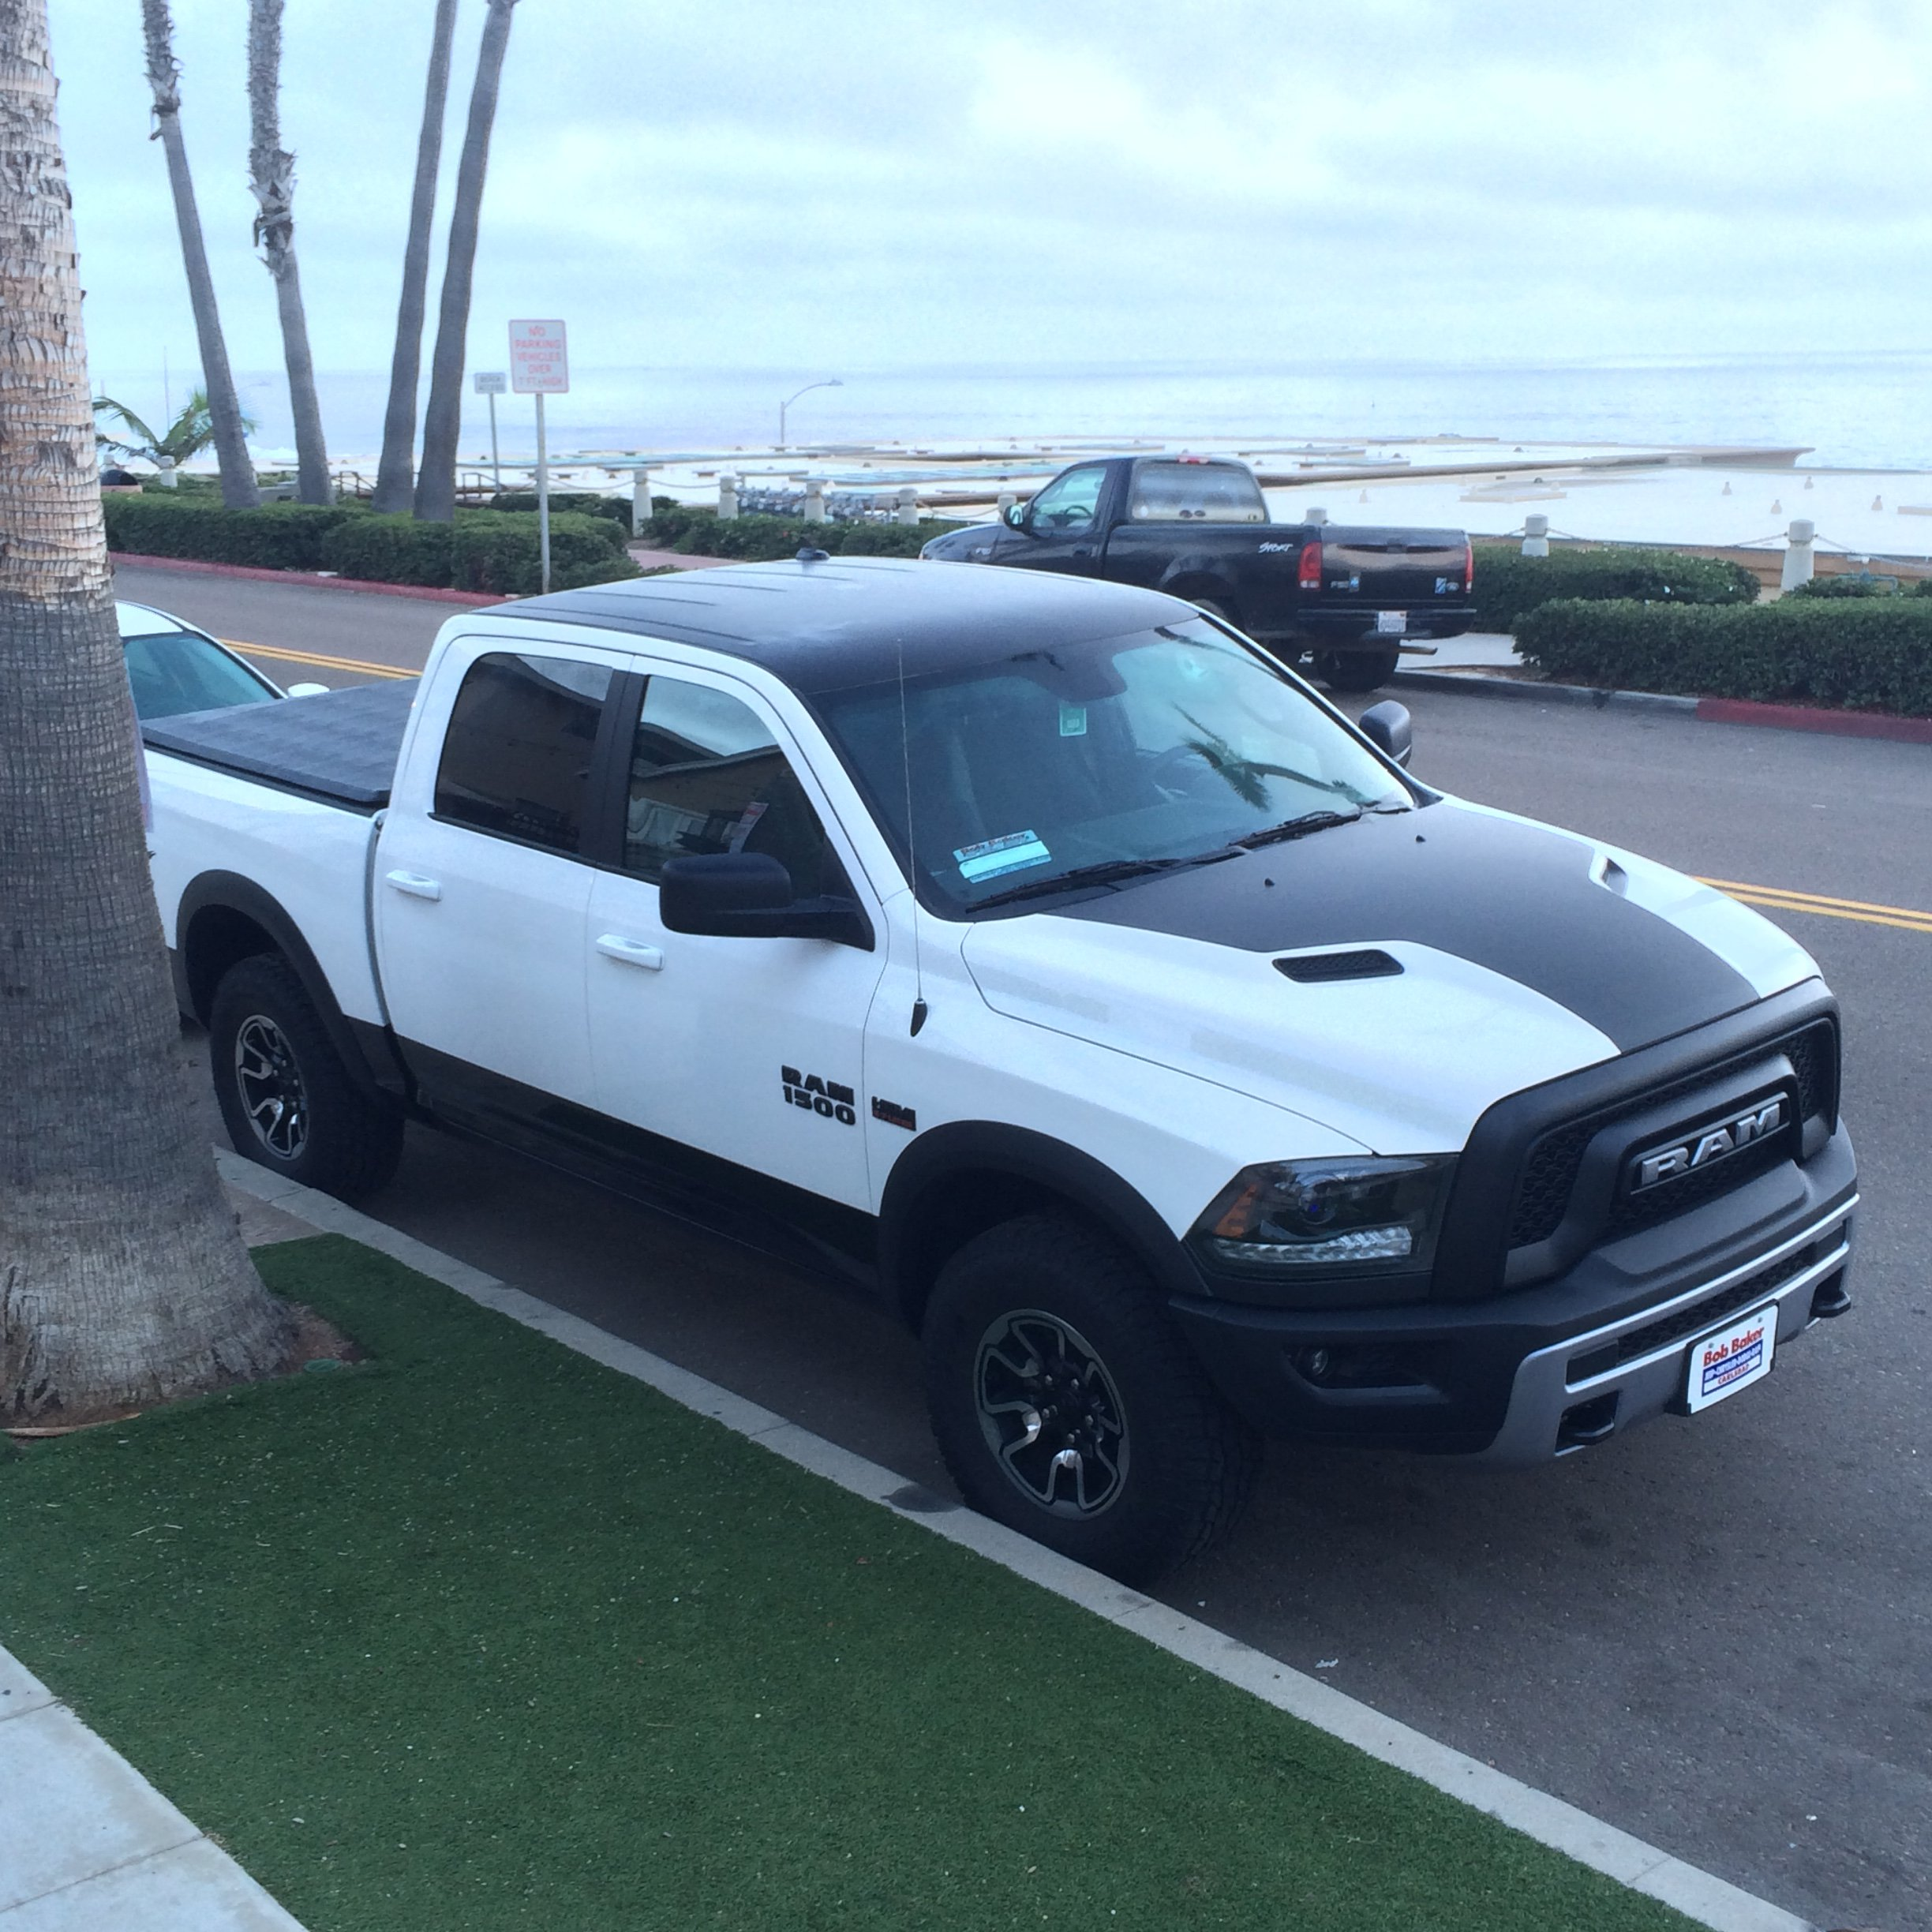 dodge trucks 2015 rebel. got my 2015 rebel hood and roof wrapped matte black gives it a whole new aggressive look ties in the grille badges dodge trucks